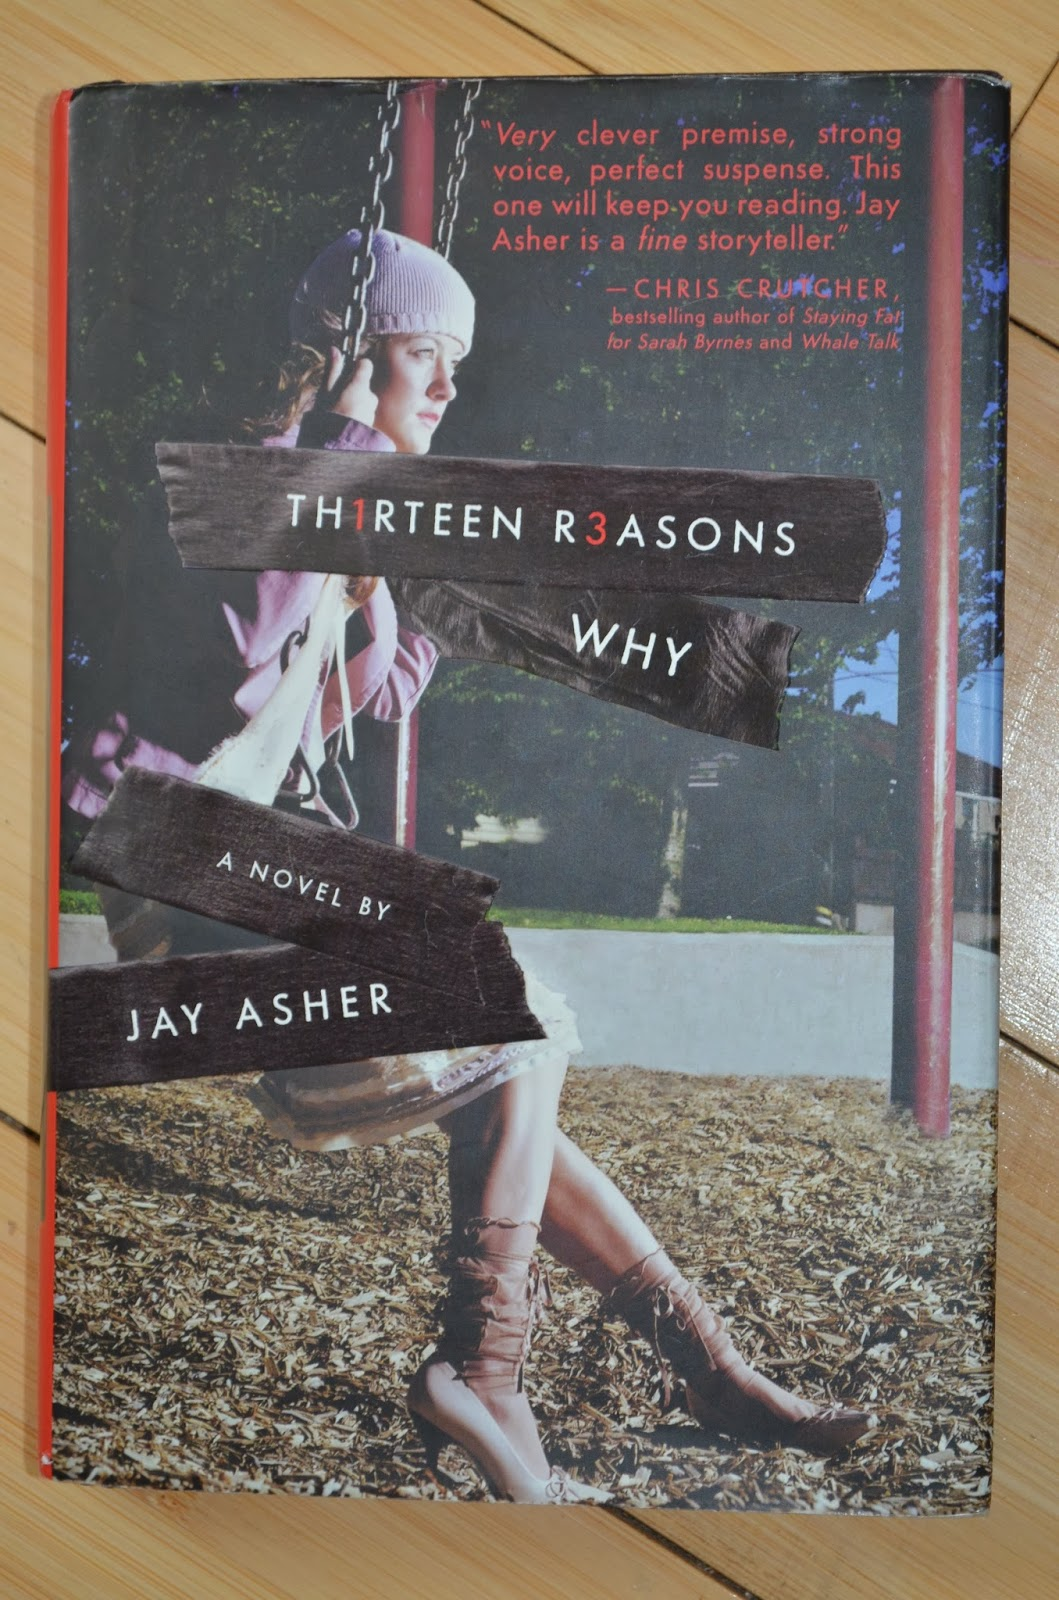 Composition Critique: 13 Reasons Why by Jay Asher